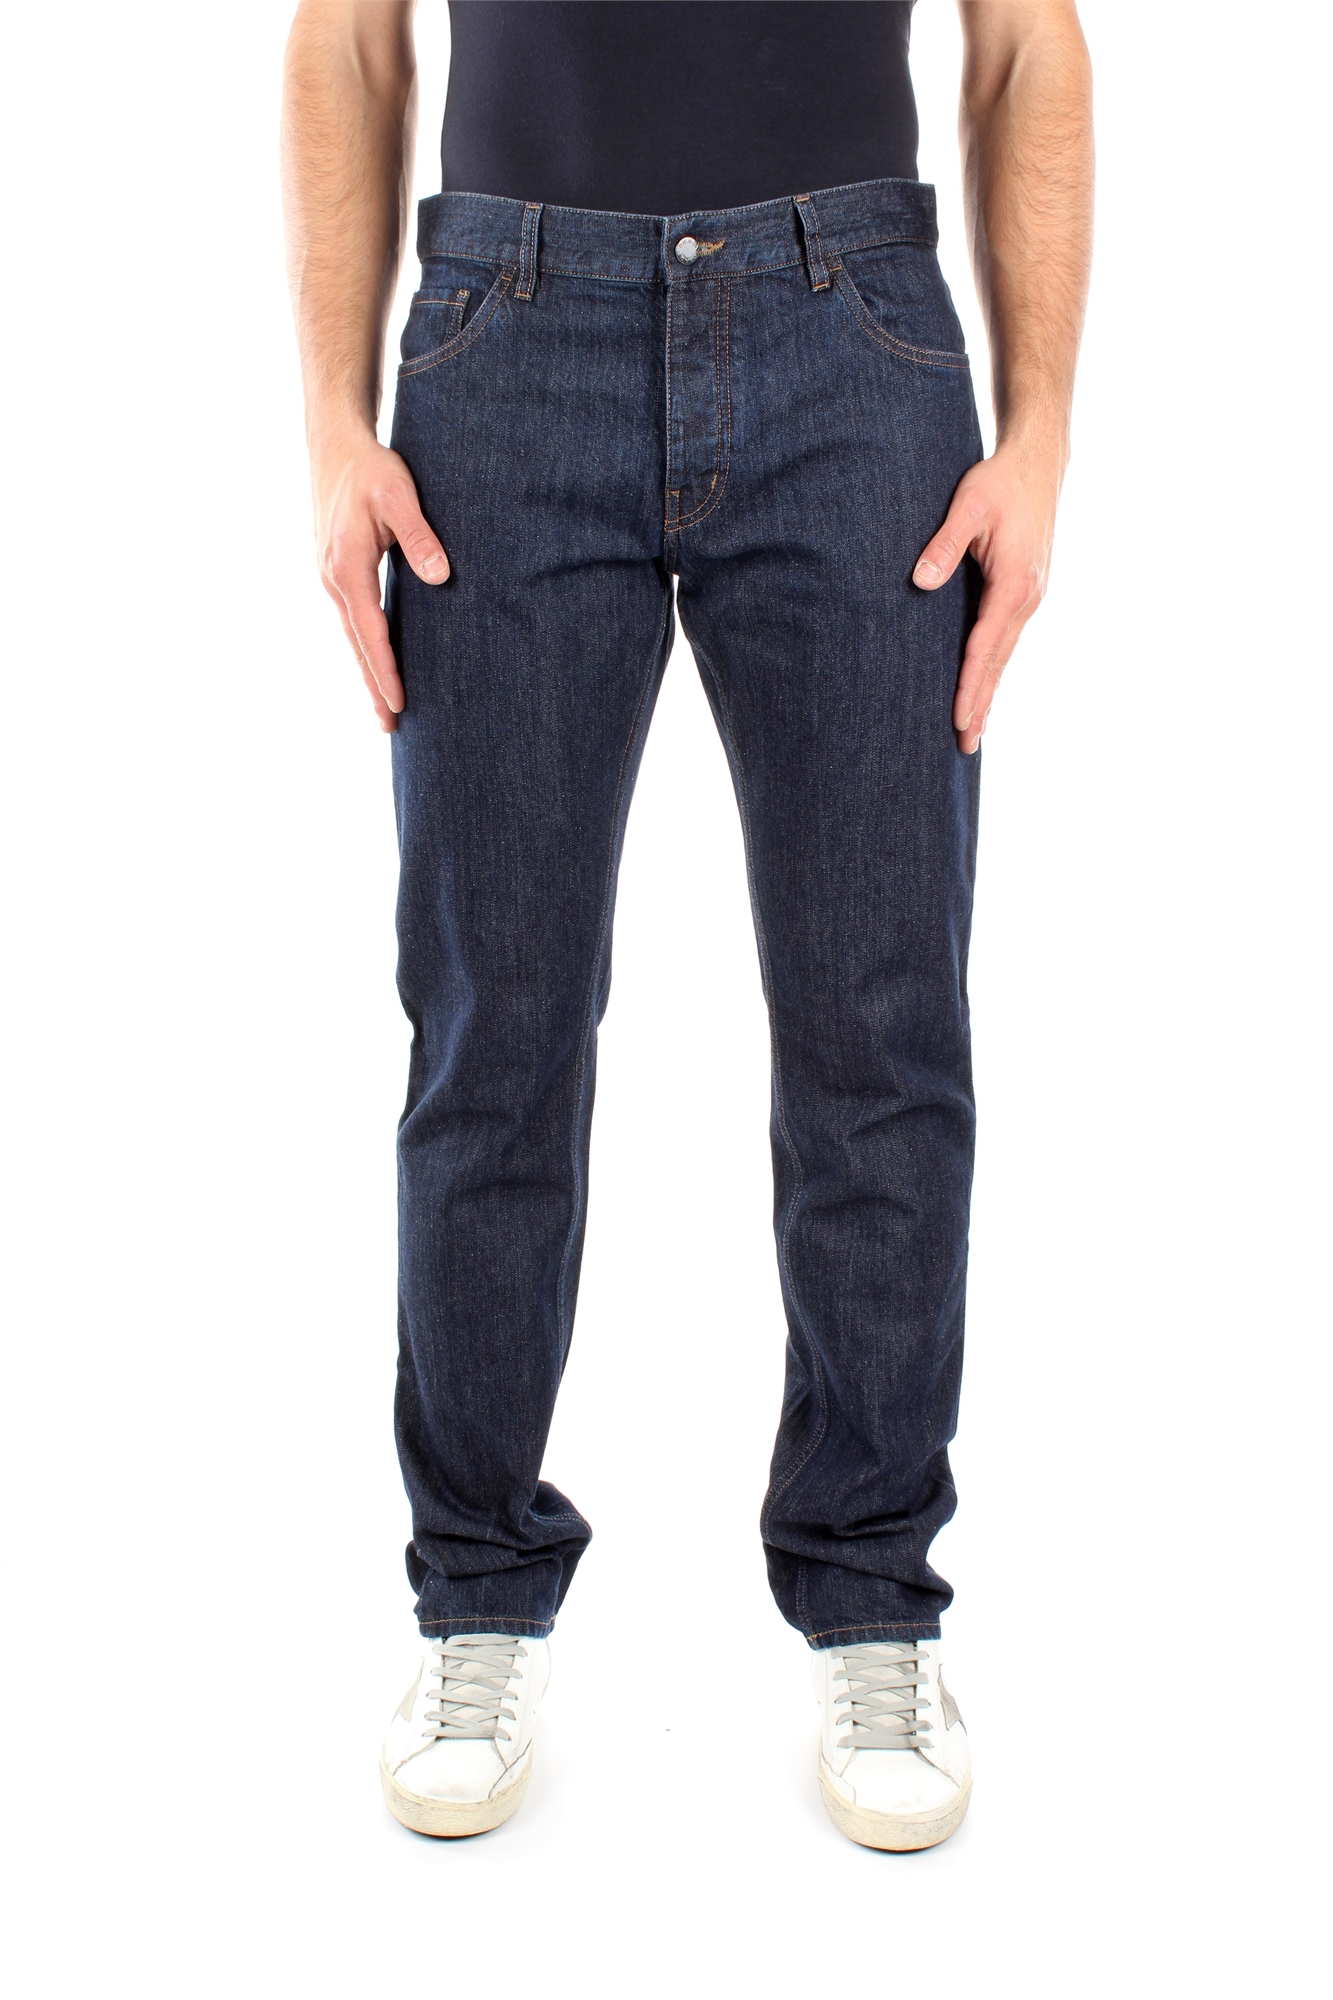 Jeans-Prada-tight-fit-Uomo-GEP110BLEULIGHT